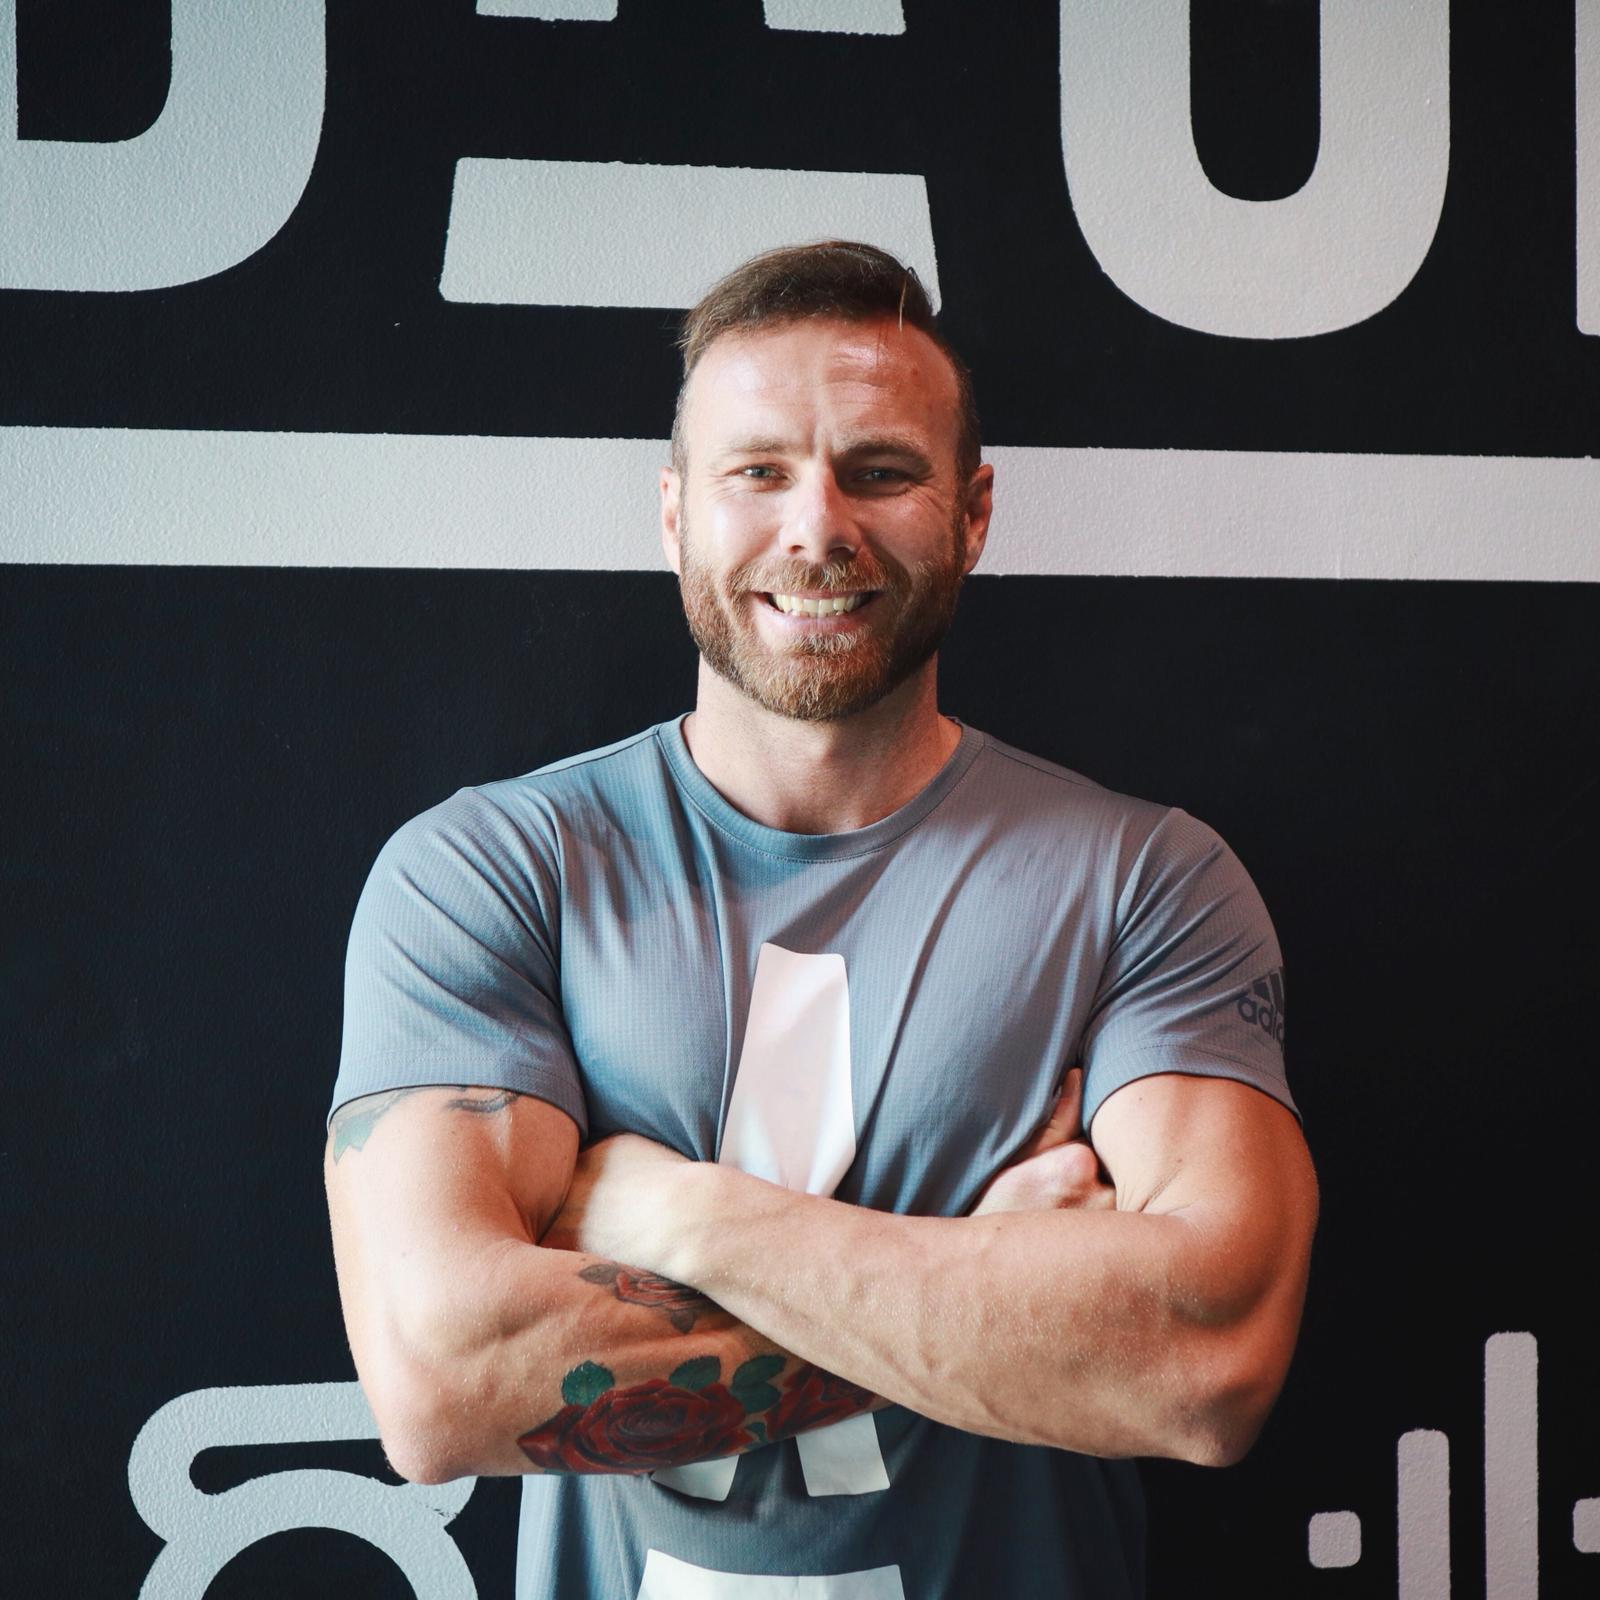 BASE Lowdown: Personal Training Coach Tommy